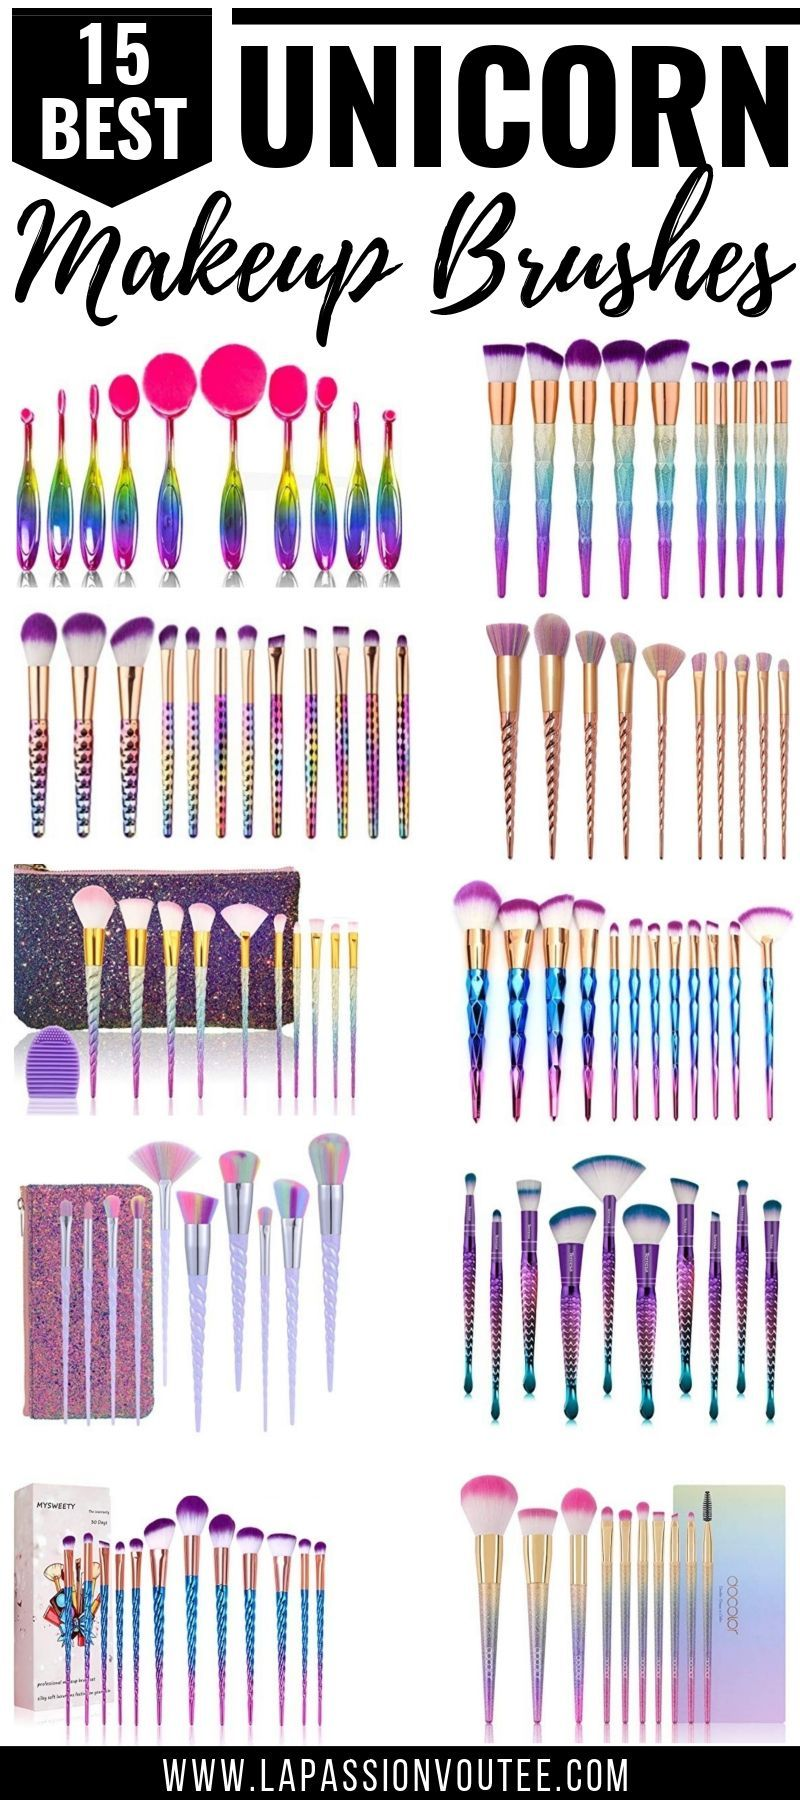 Top 10 Best Makeup Brush Sets On Amazon Worth Every Penny Unicorn Makeup Brushes Makeup Brushes Guide Makeup Brushes